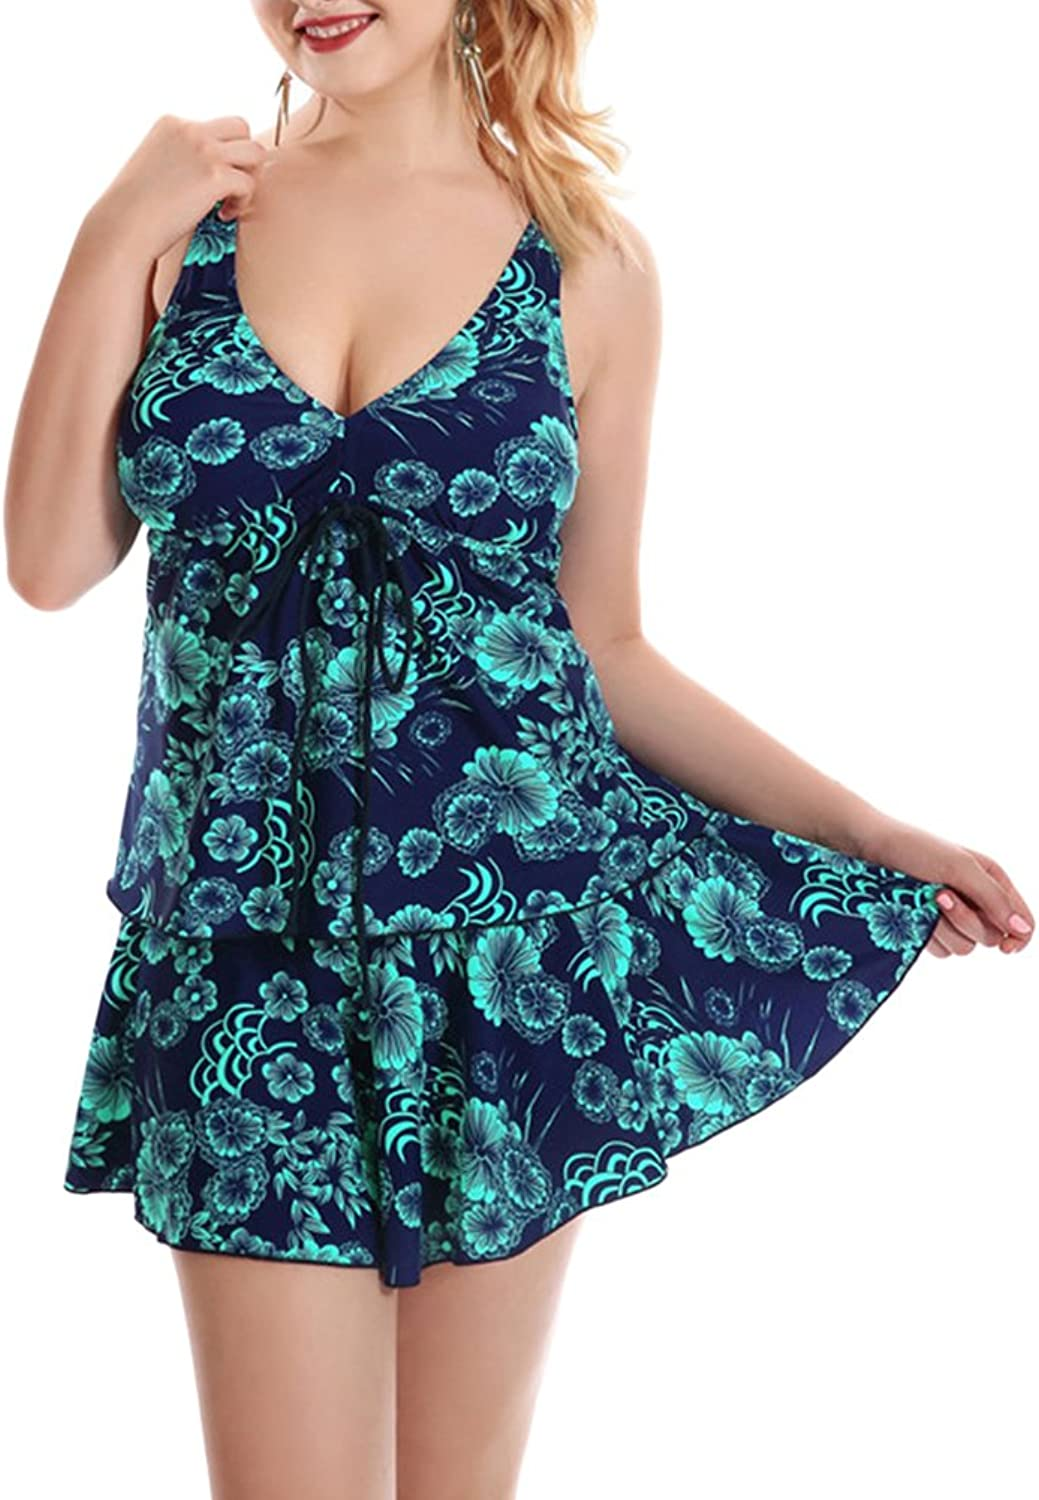 Zhhlinyuan Womens 3 Pieces Plus Size Swimsuit Swimming Costume Elastic Quick Dry Bowknot Swimdress With Skirt